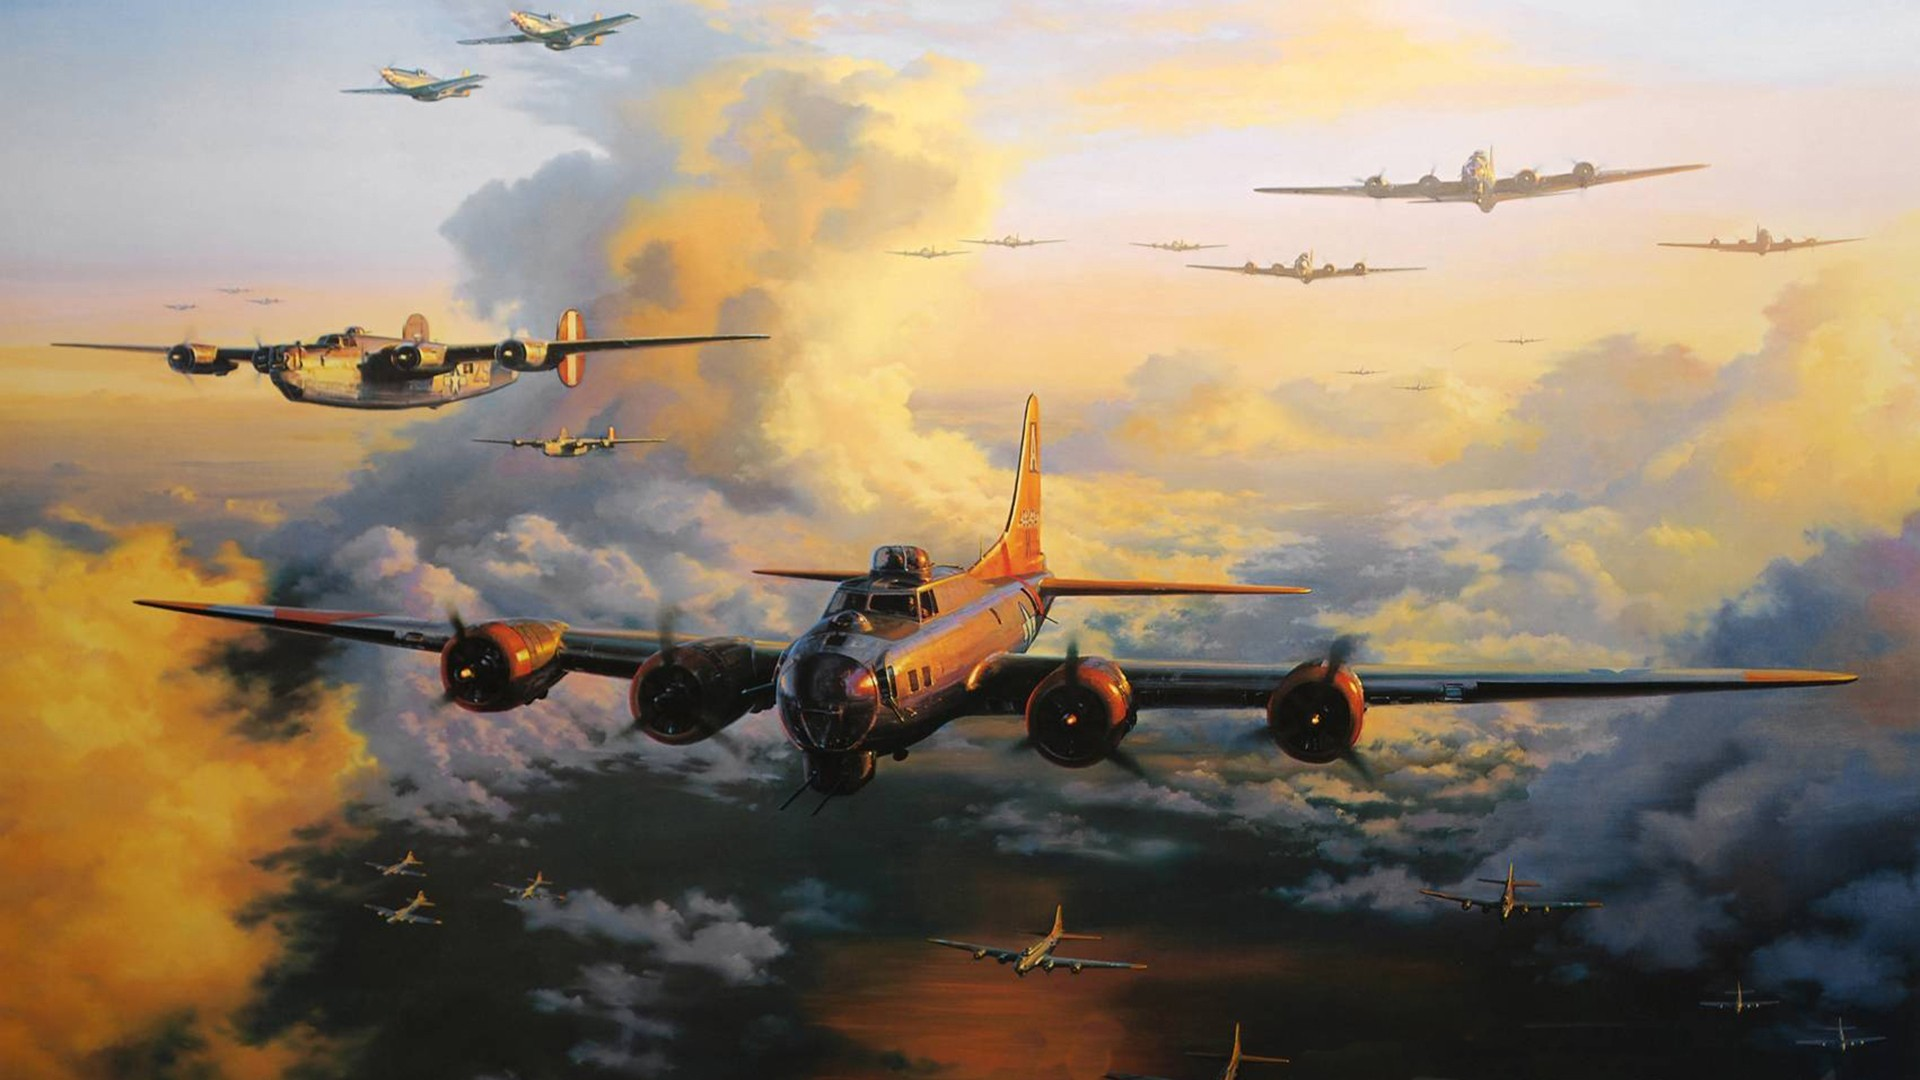 Ww2 airplane wallpaper wallpapersafari - World war 2 desktop wallpaper ...